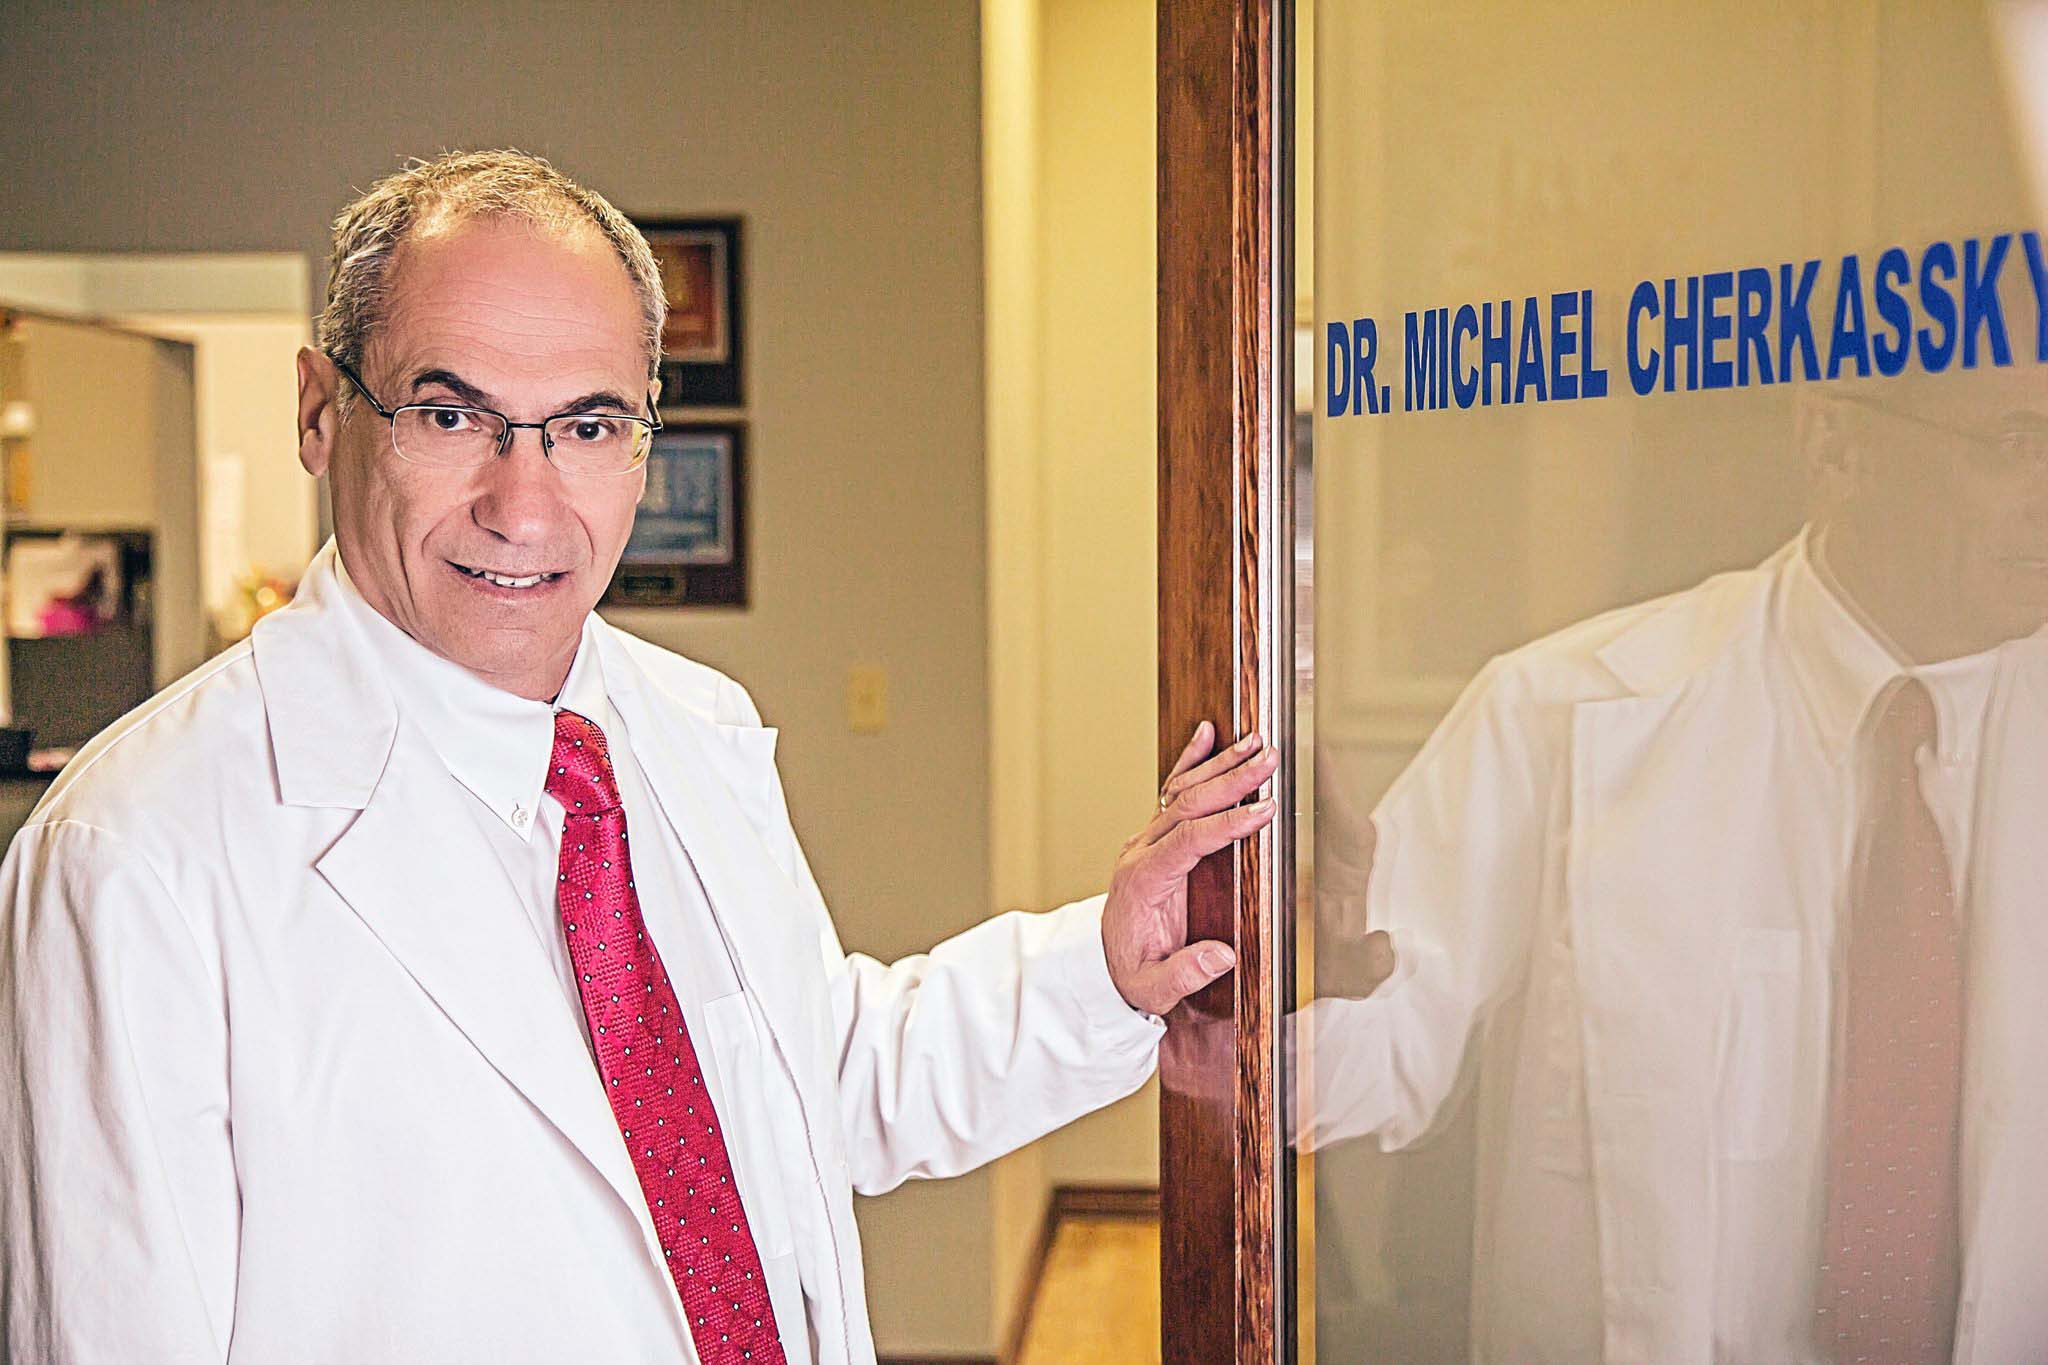 Weight Loss Specialist Dr Michael Cherkassky Opens Dallas Office